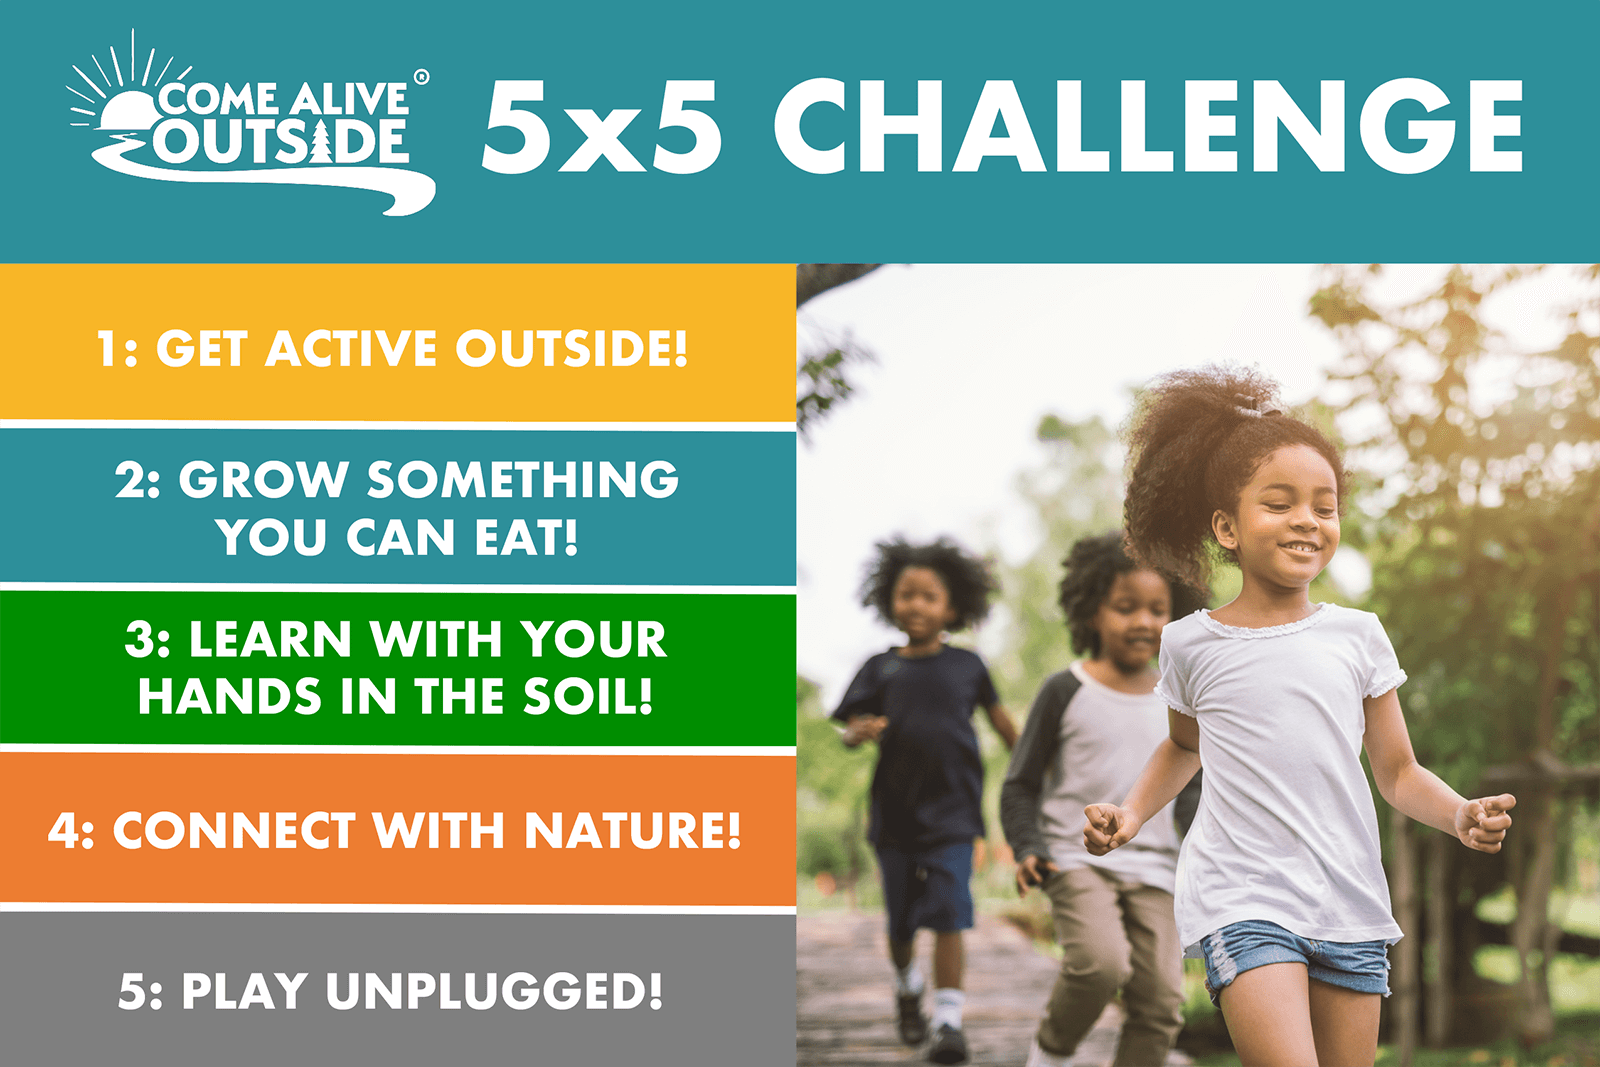 Come Alive Outside 5x5 Challenge